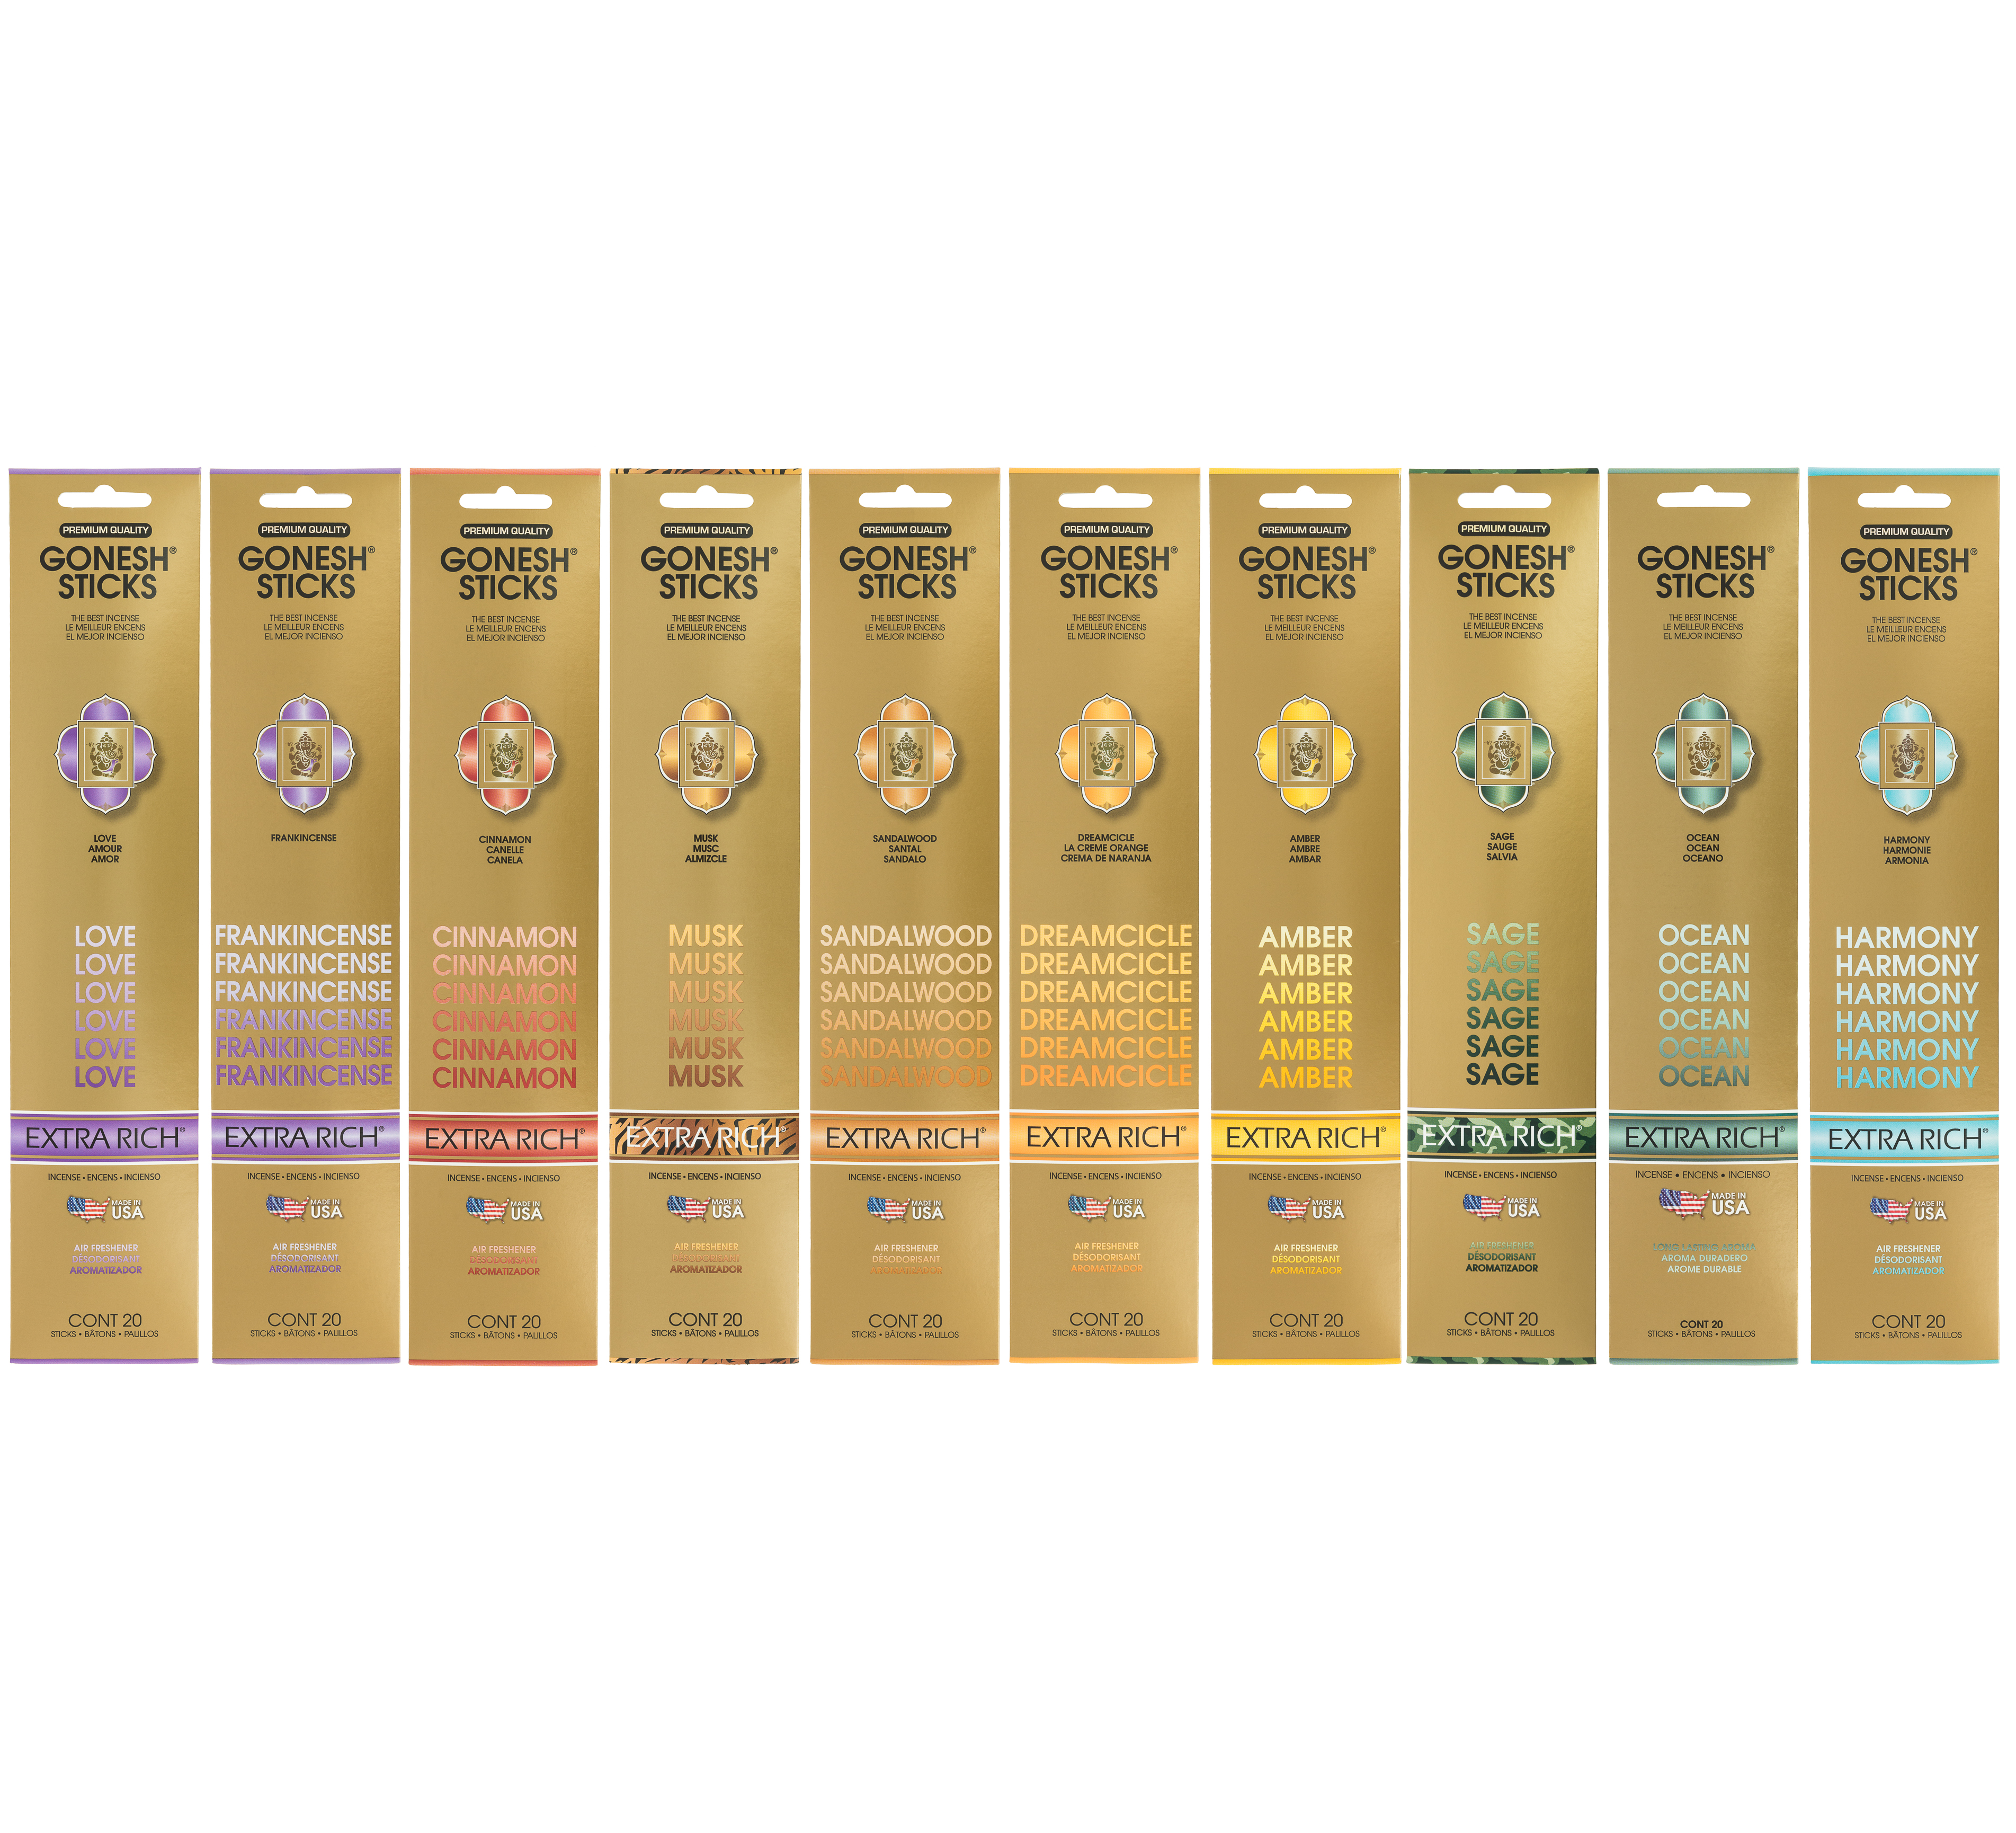 Pack Gonesh 10 Aromas Best-Sellers